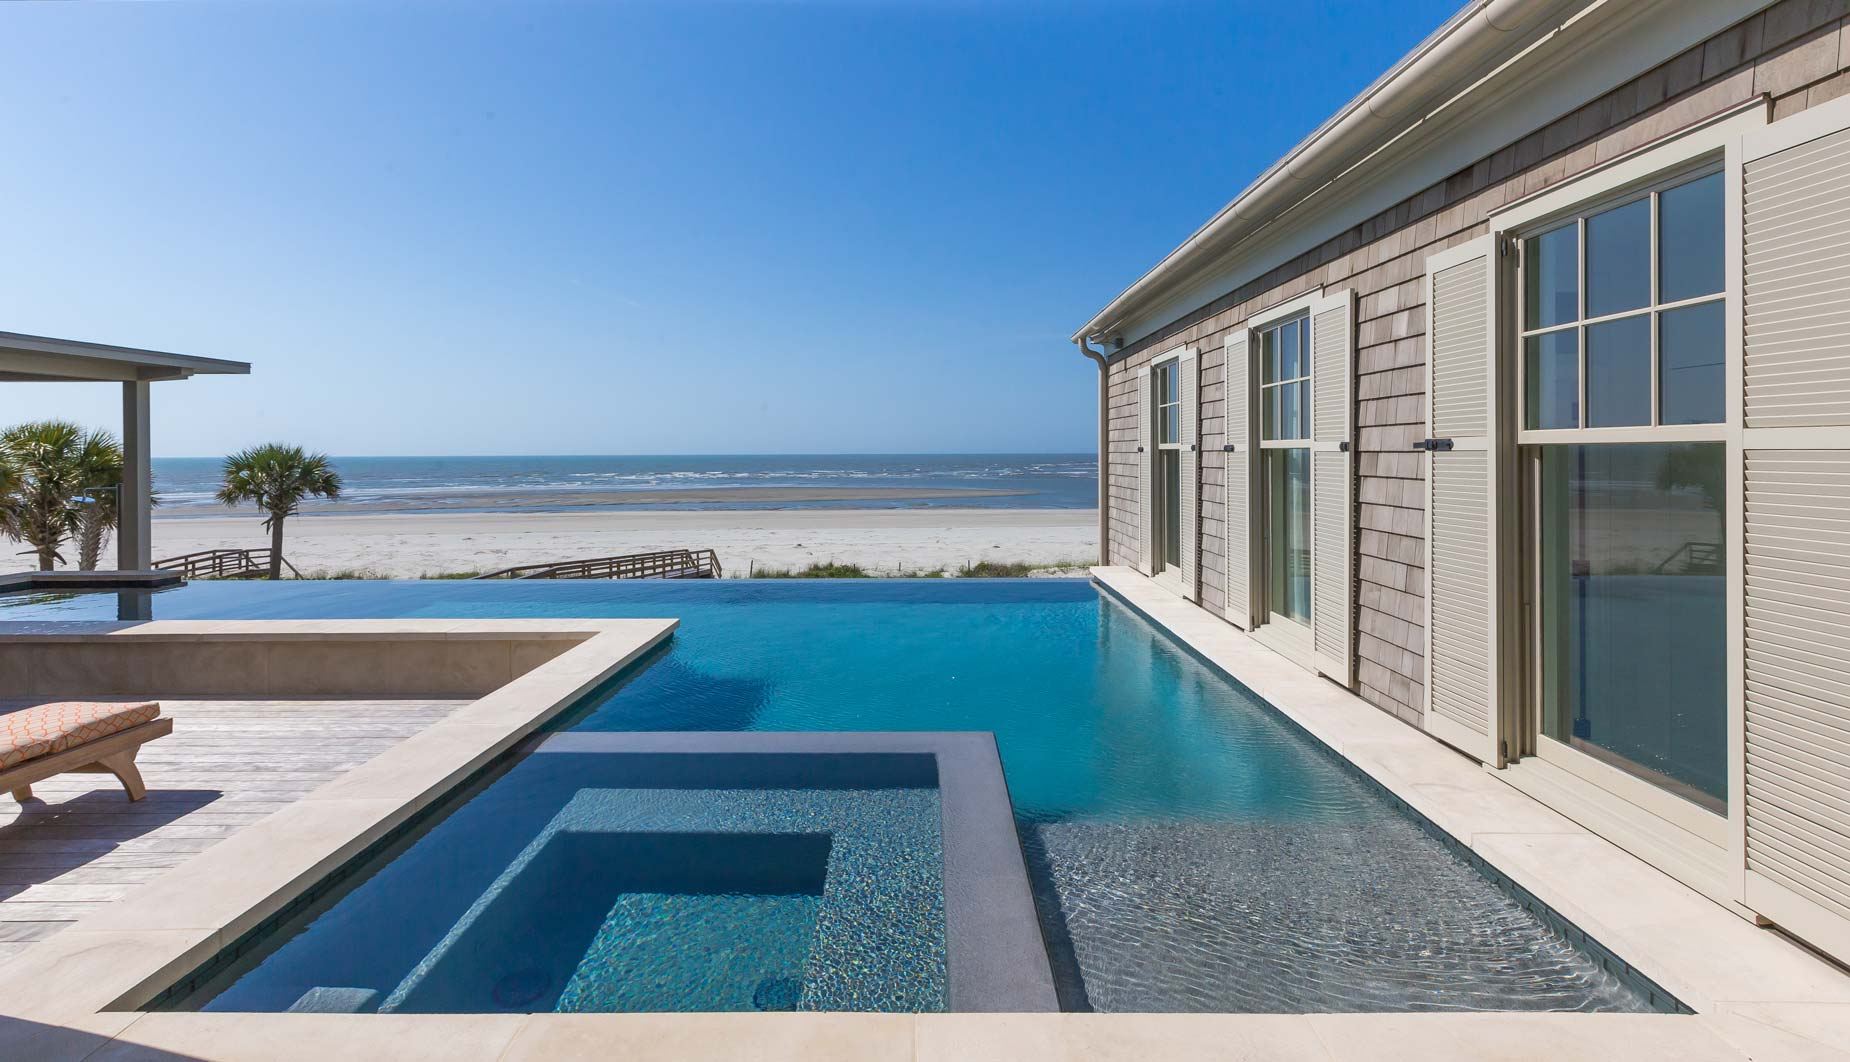 Infinity Pool Spa combo with scenic beach view and hydrazzo pool finish